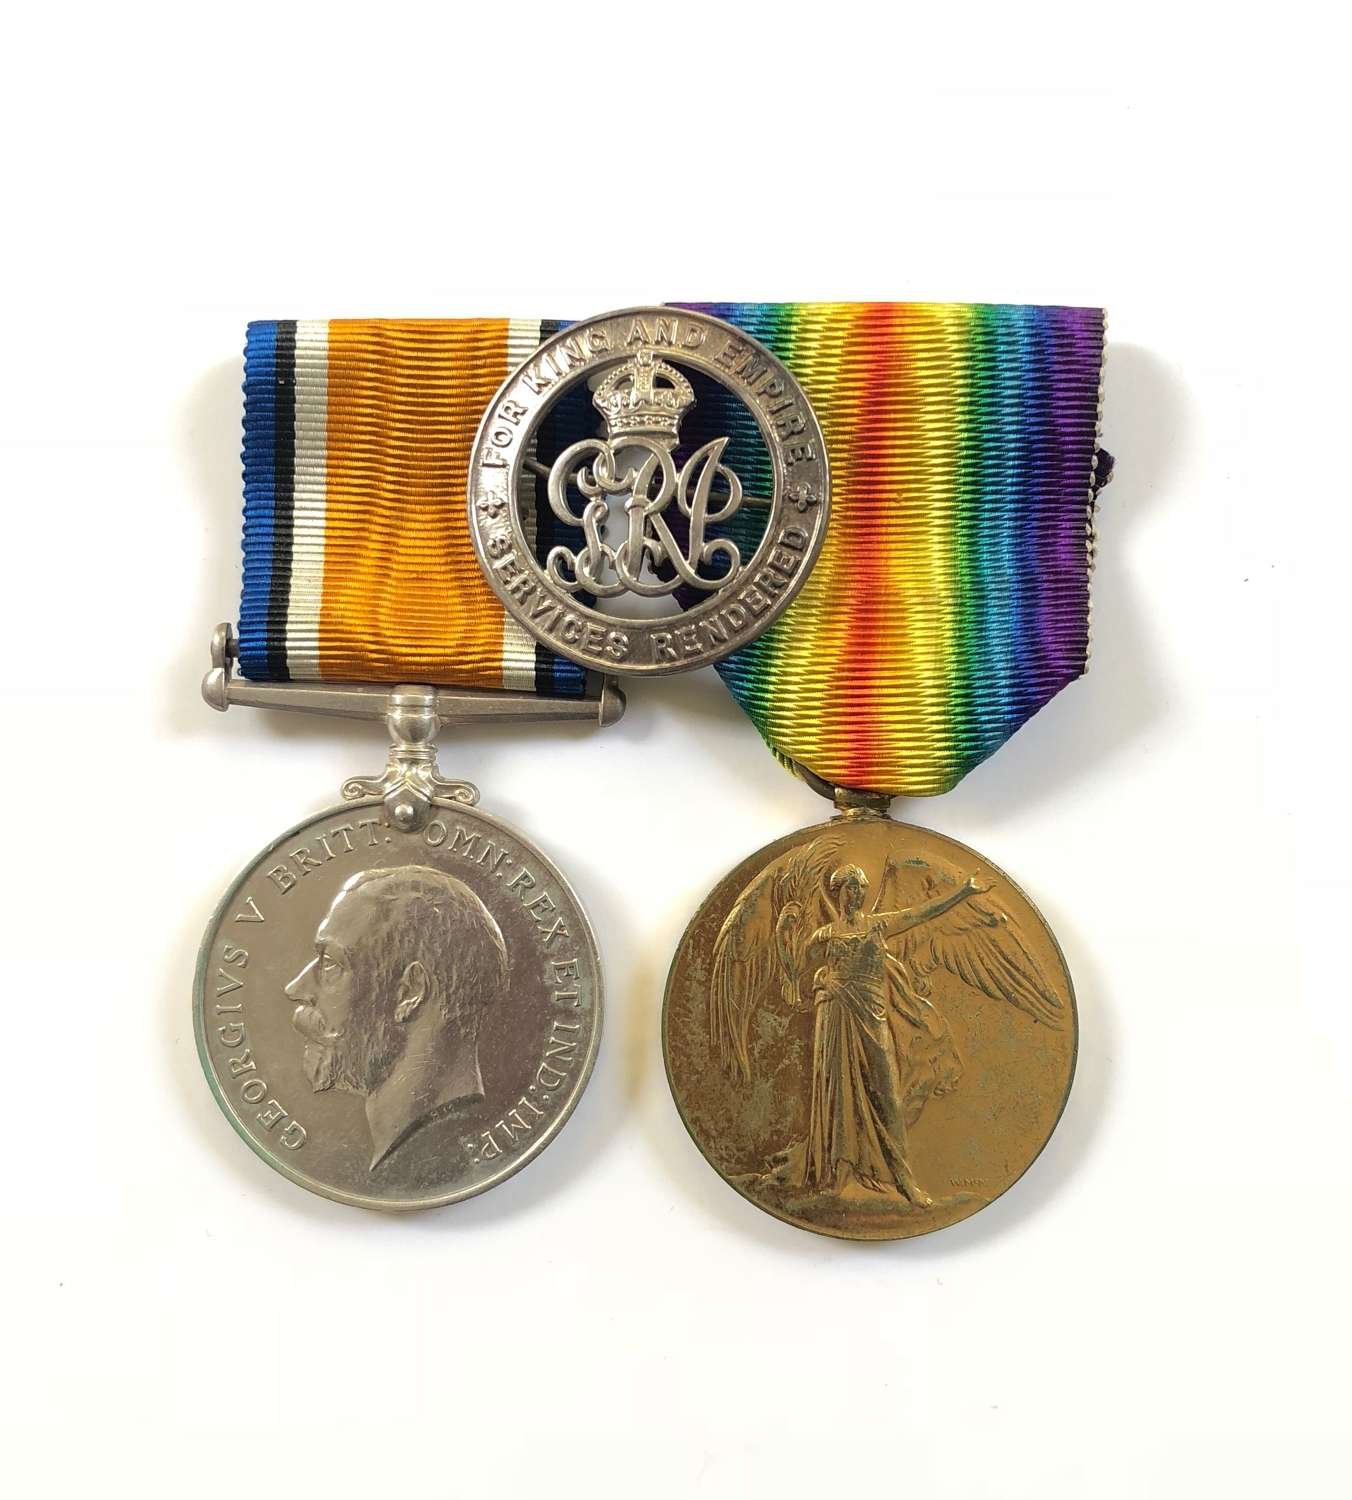 WW1 Manchester Regiment Pair of Medals and Silver War Badge.